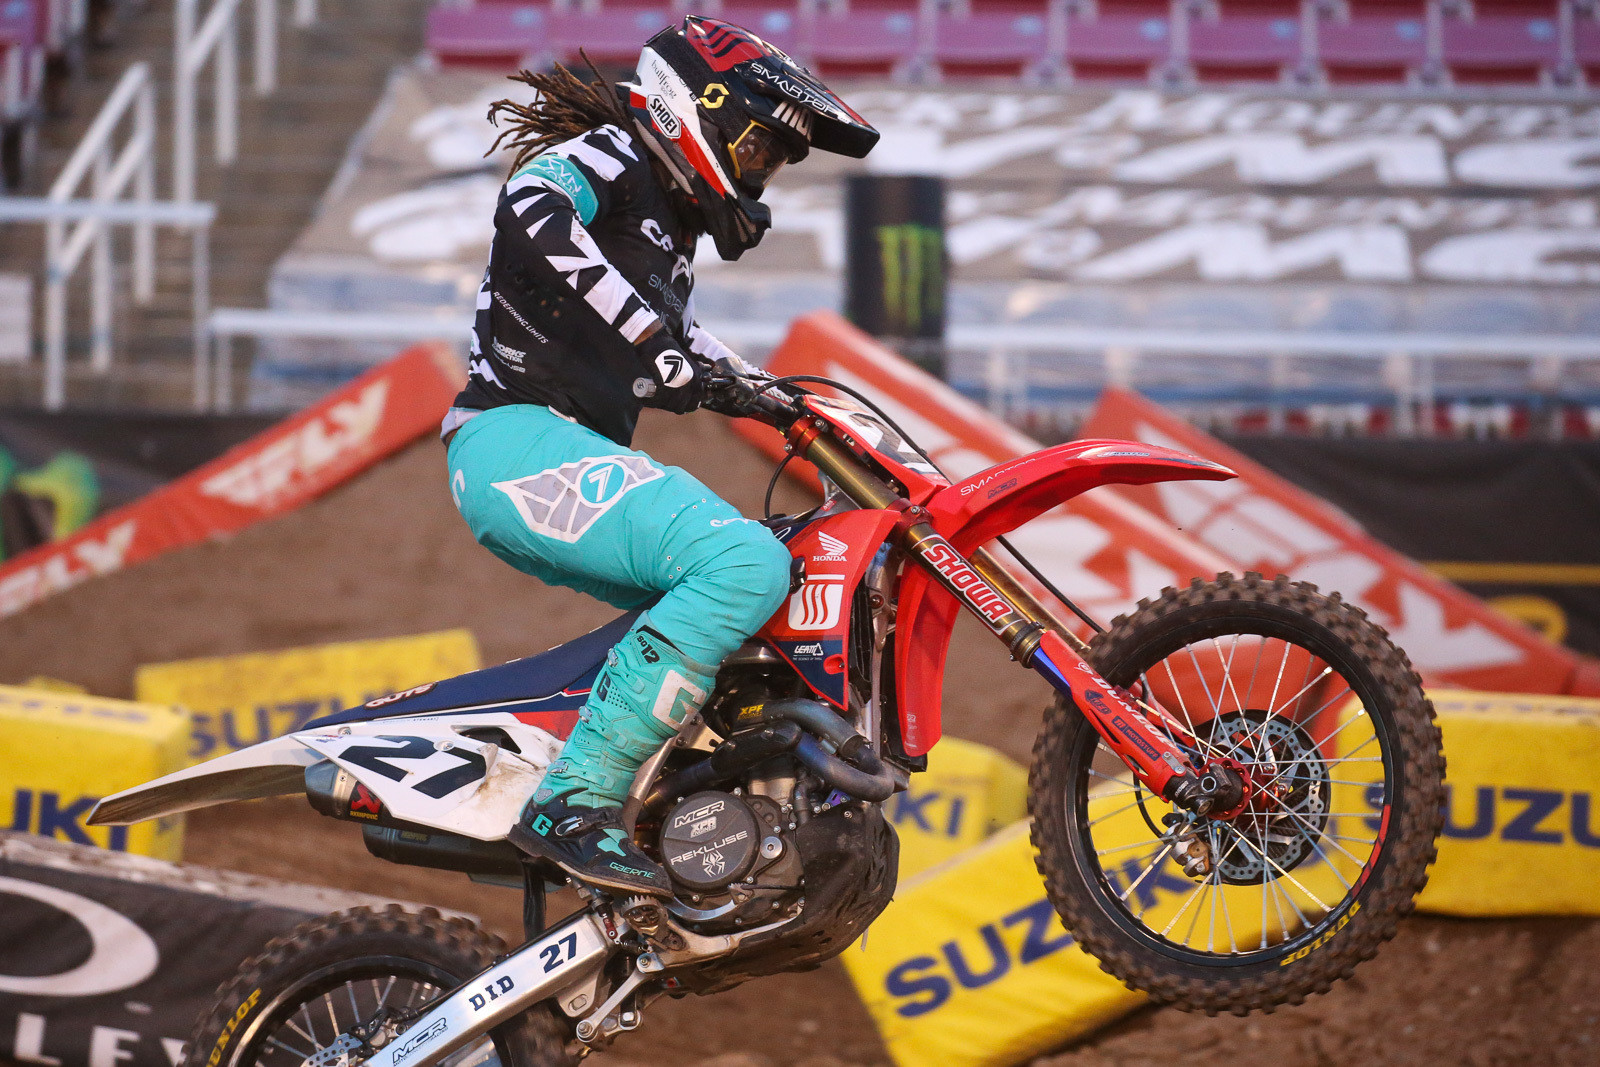 Malcolm Stewart was on fire in his heat race, and with a better start in the main? Who knows? He did jump from 20th to seventh at the finish.